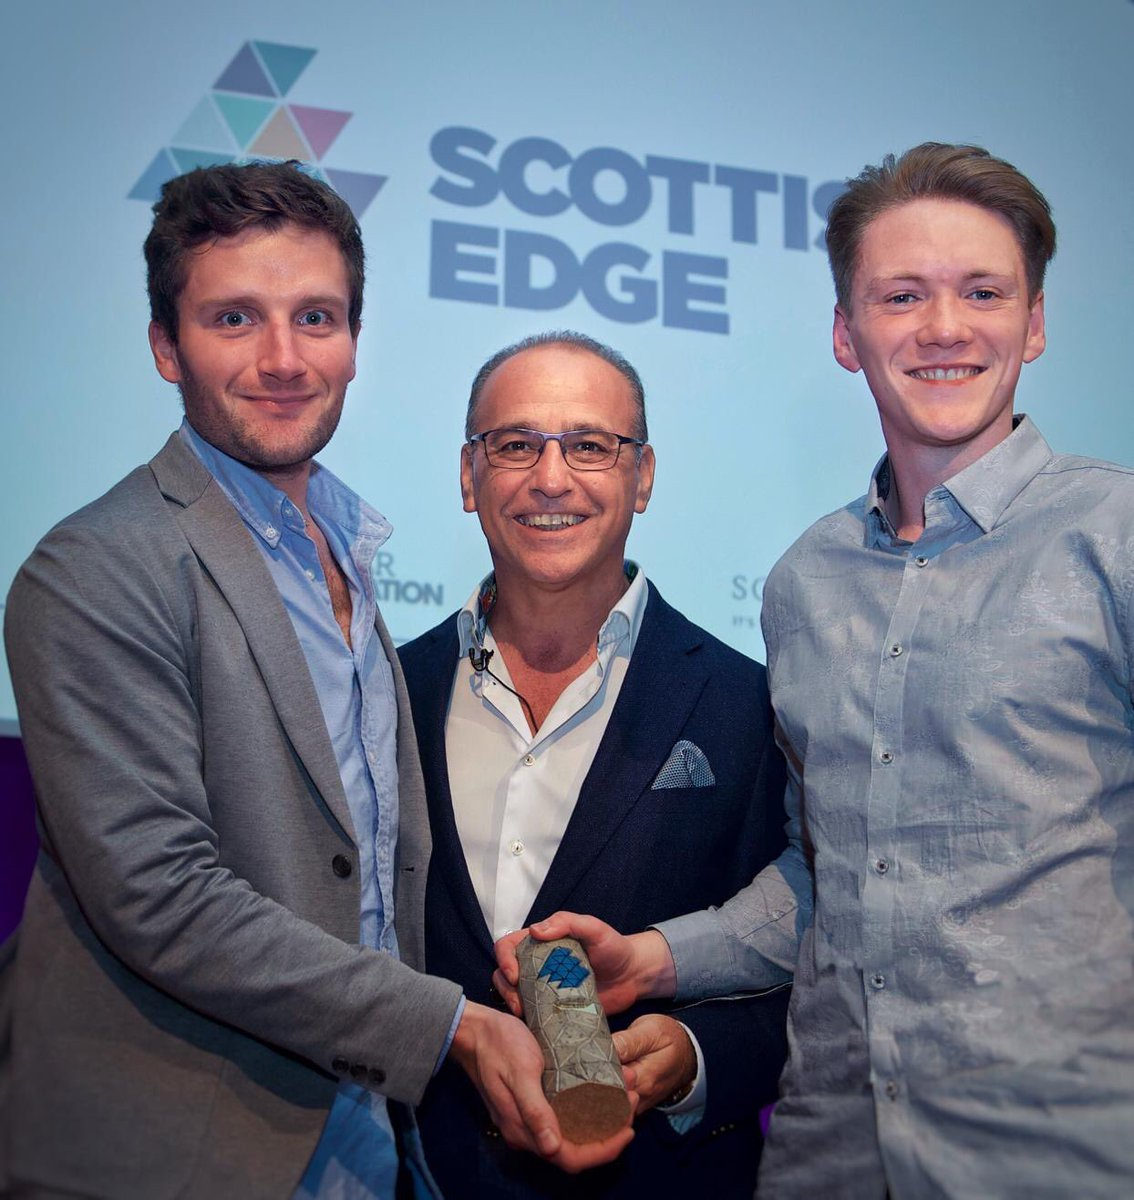 Successfully made it through Dragon's Den 🐉 / (#EDGE15 @ScottishEDGE ) Alex and I were successful in our pitch for funds for Hindsight Vision 🕶. Launch coming in 2020 😁